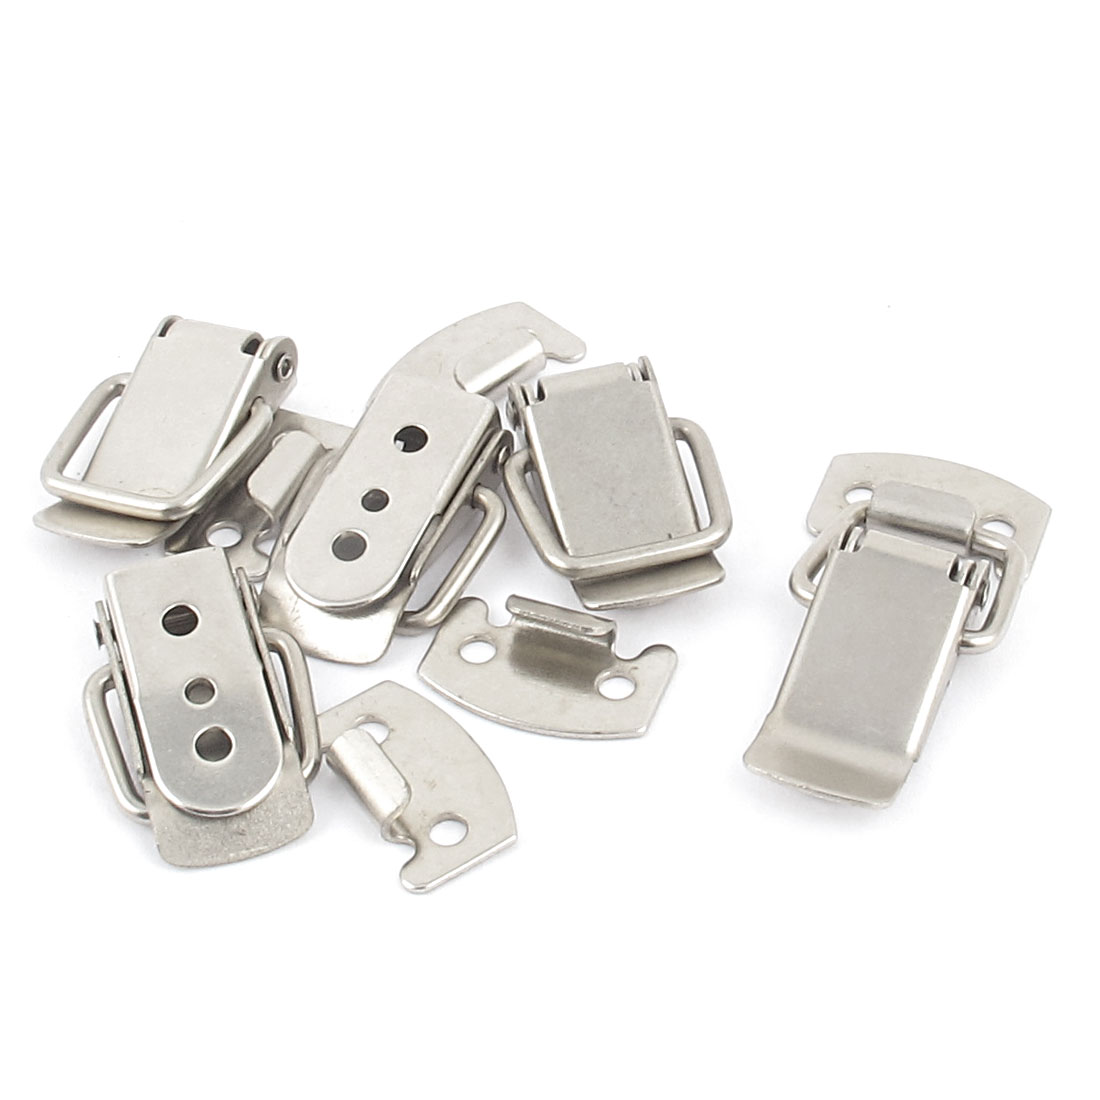 Cabinet Draw Metal Straight Loop Toggle Latch Catch Fastener 5pcs